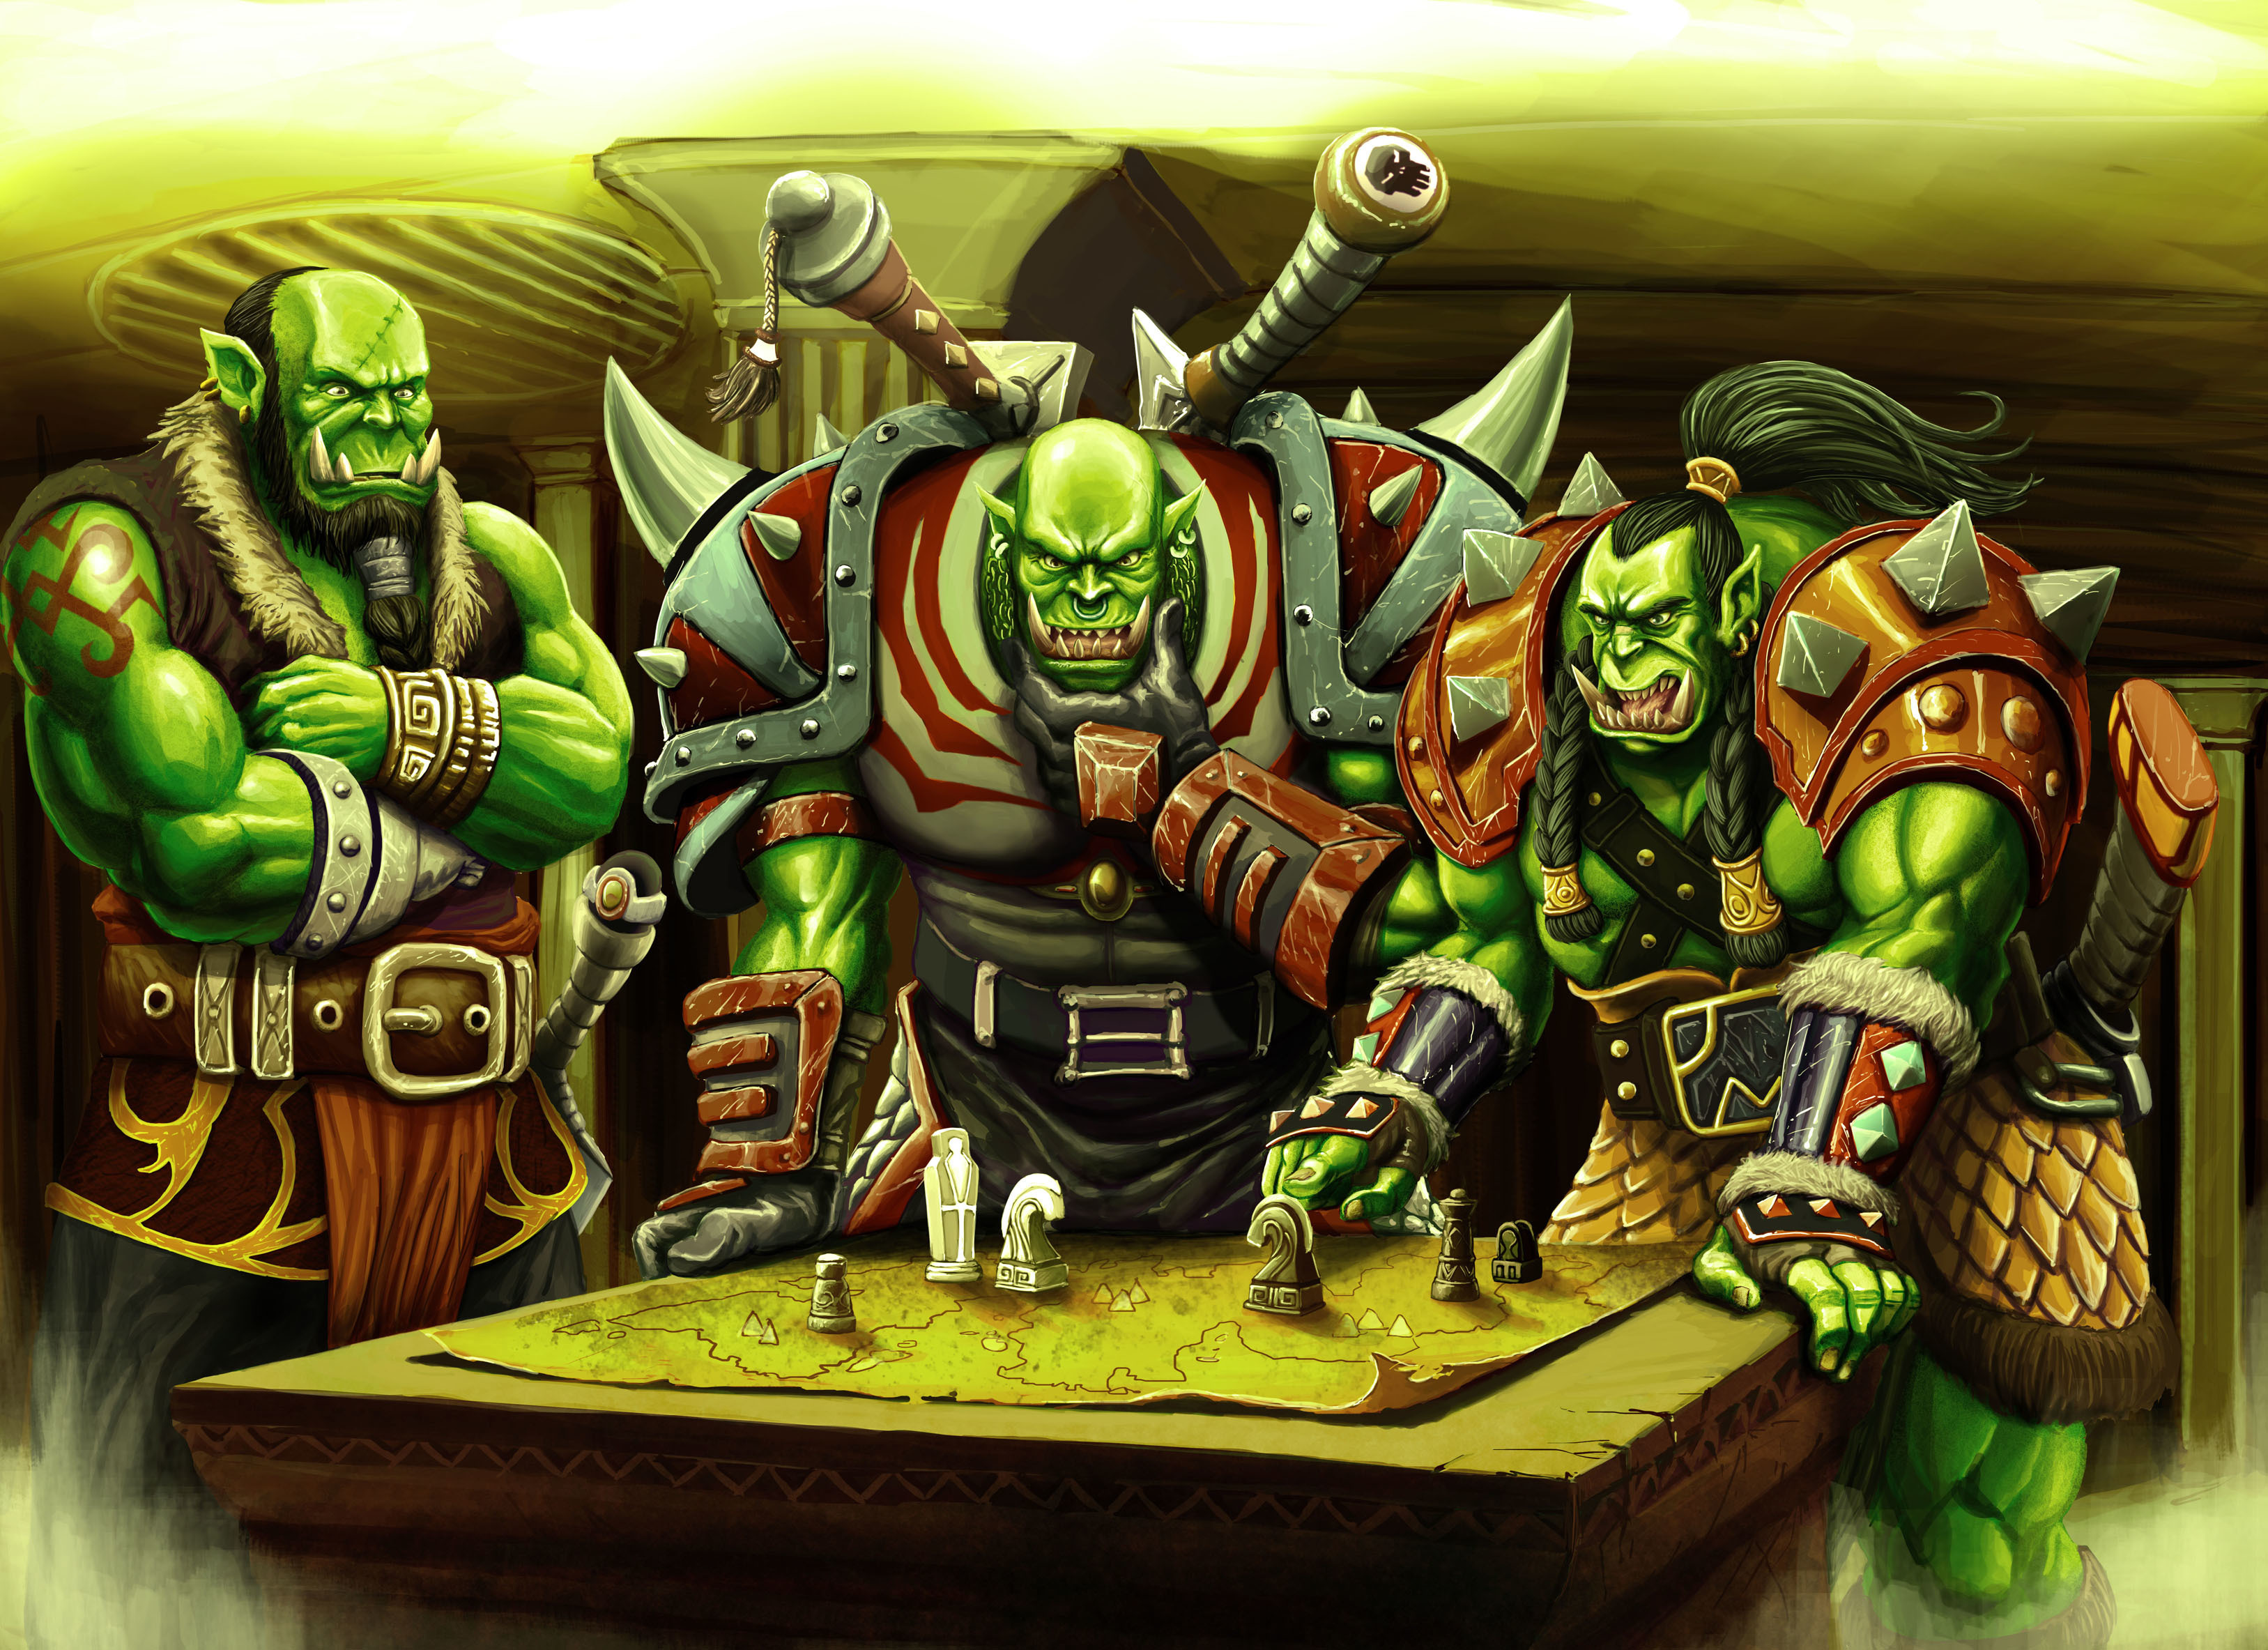 World of WarCraft WoW Orc Warrior Table Game Fantasy wallpaper 3254x2367